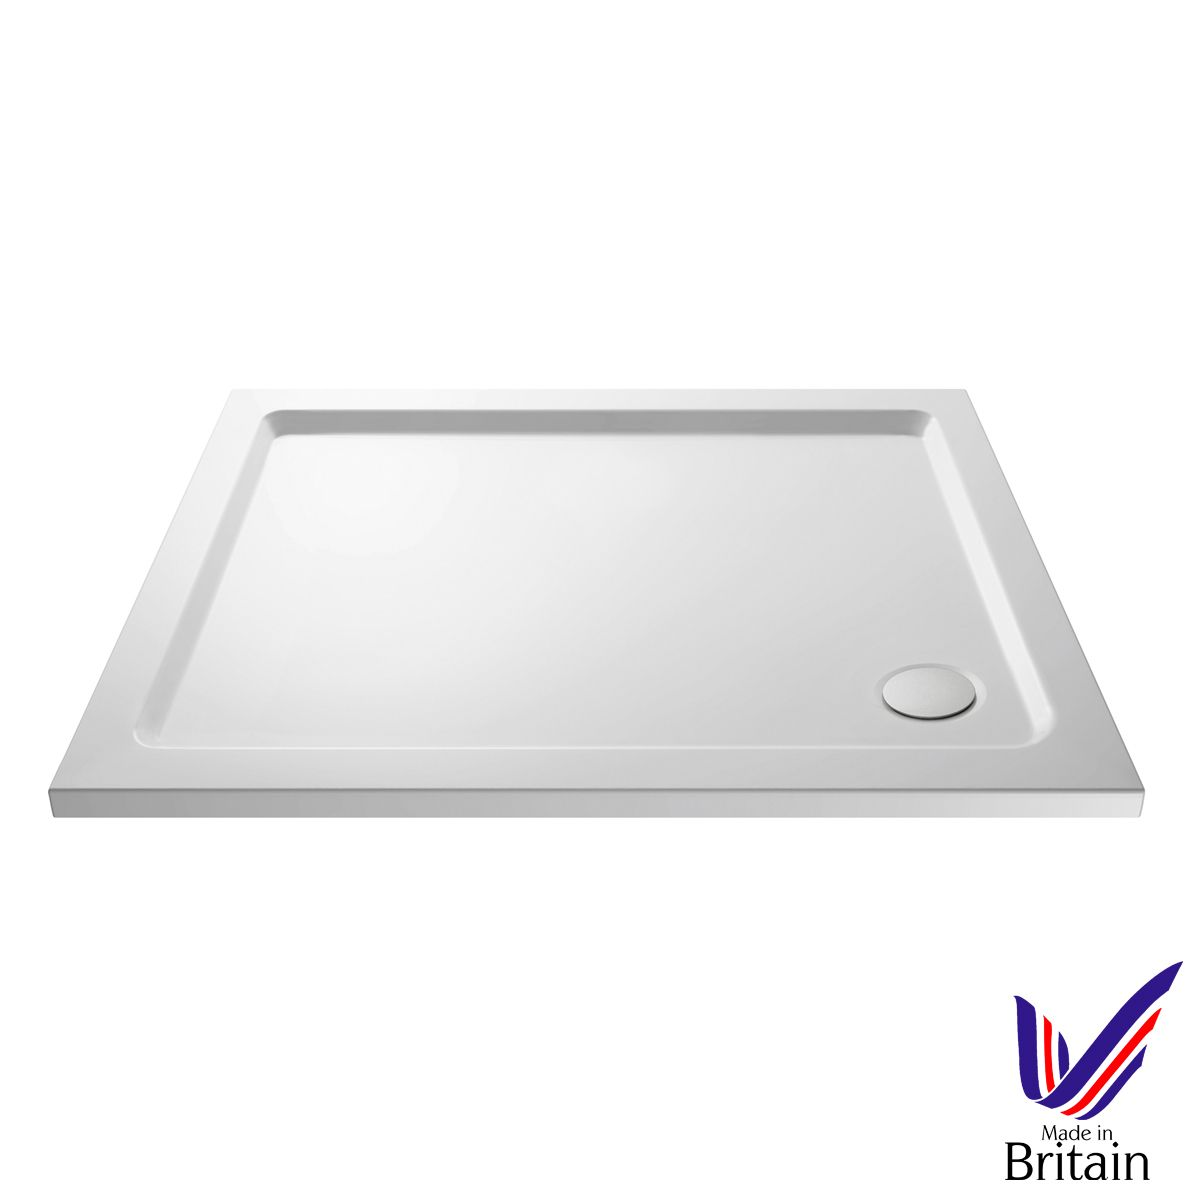 1100 x 700 Shower Tray Rectangular Low Profile by Pearlstone